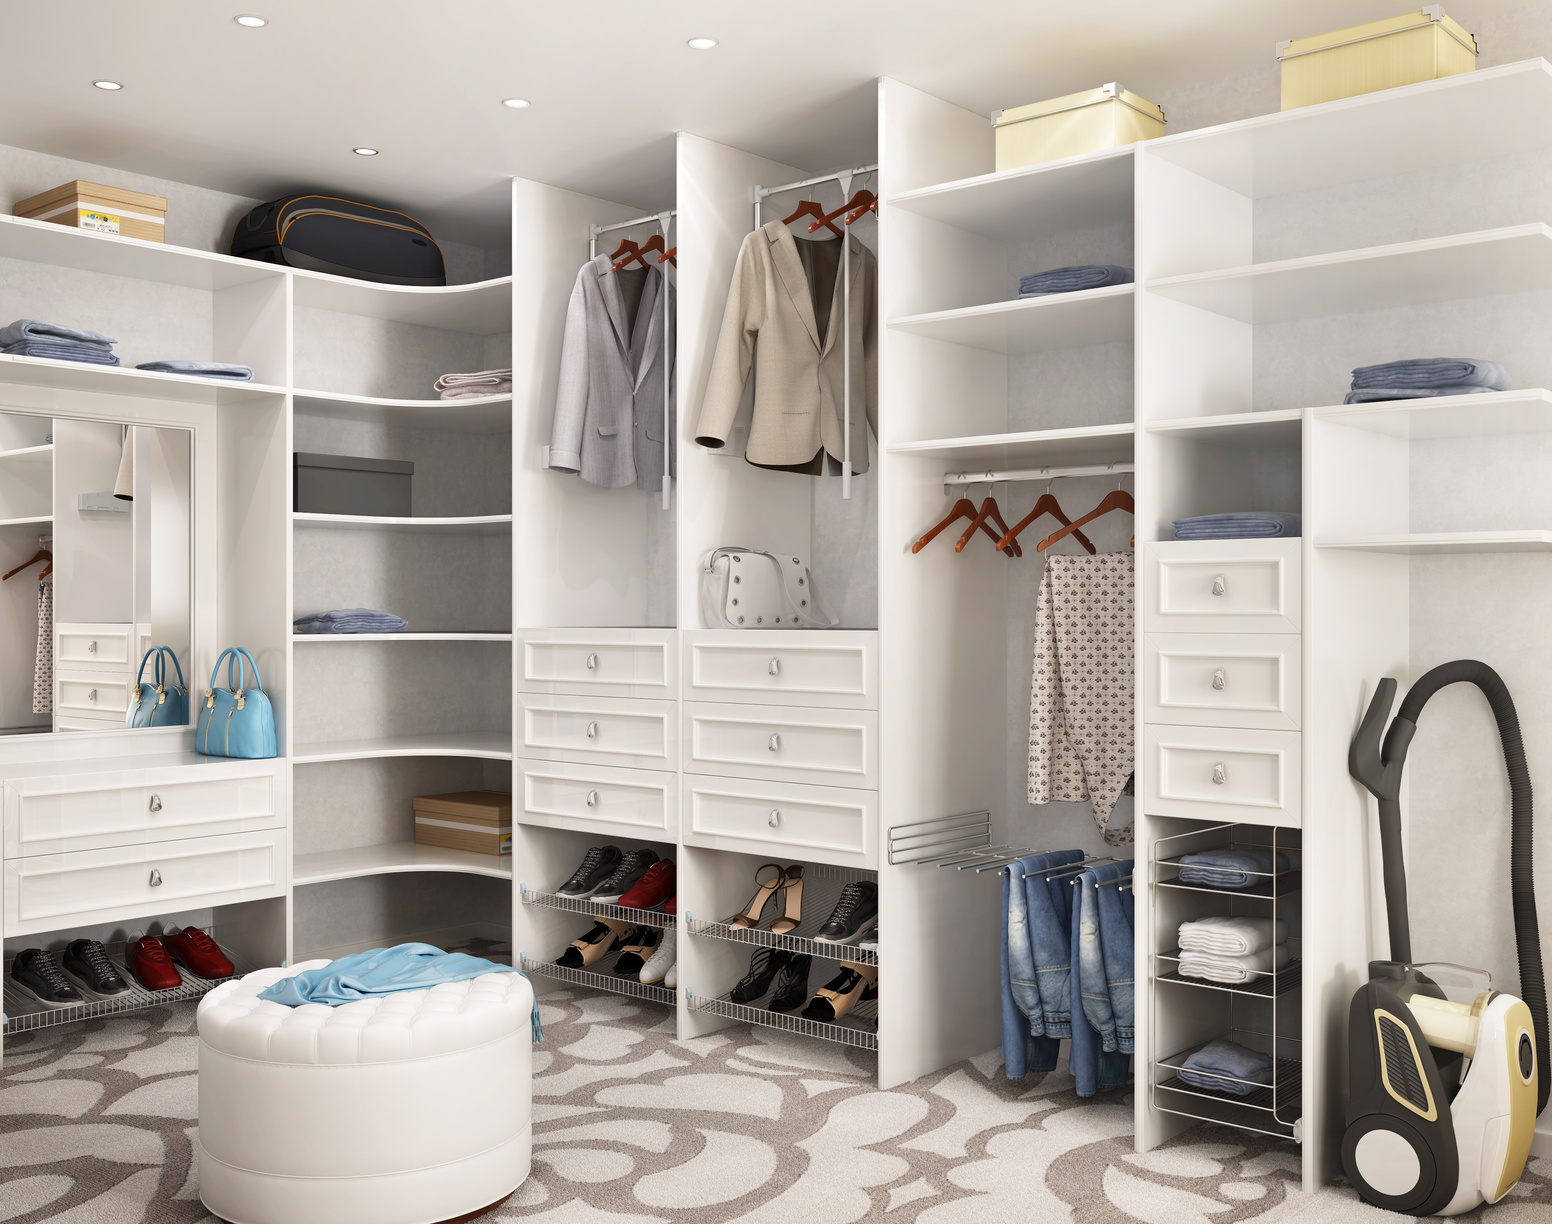 Brightly Lit Closets Are Useful, Because You Want To See Whatu0027s Inside Of  Your Closet. Thatu0027s Why LED Lighting Is Becoming Very Popular For Closets.